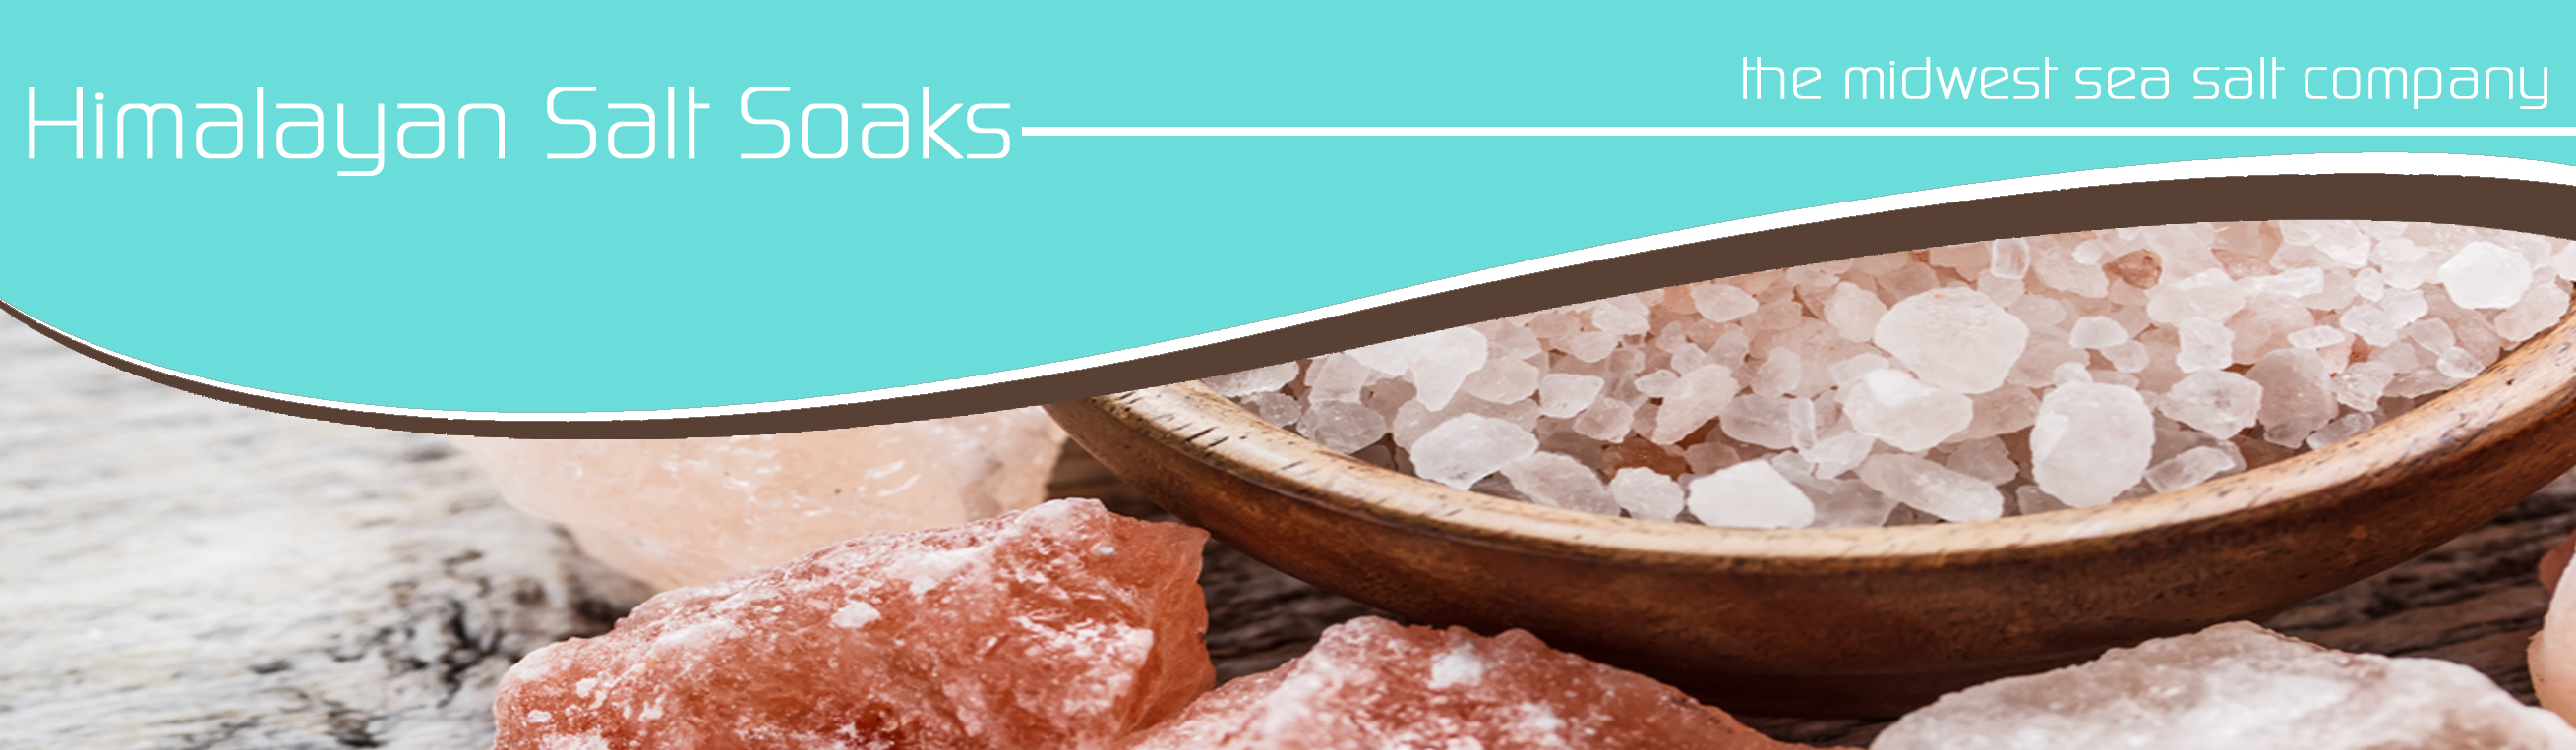 himalayan-salt-soaks-midwest-sea-salt.jpg